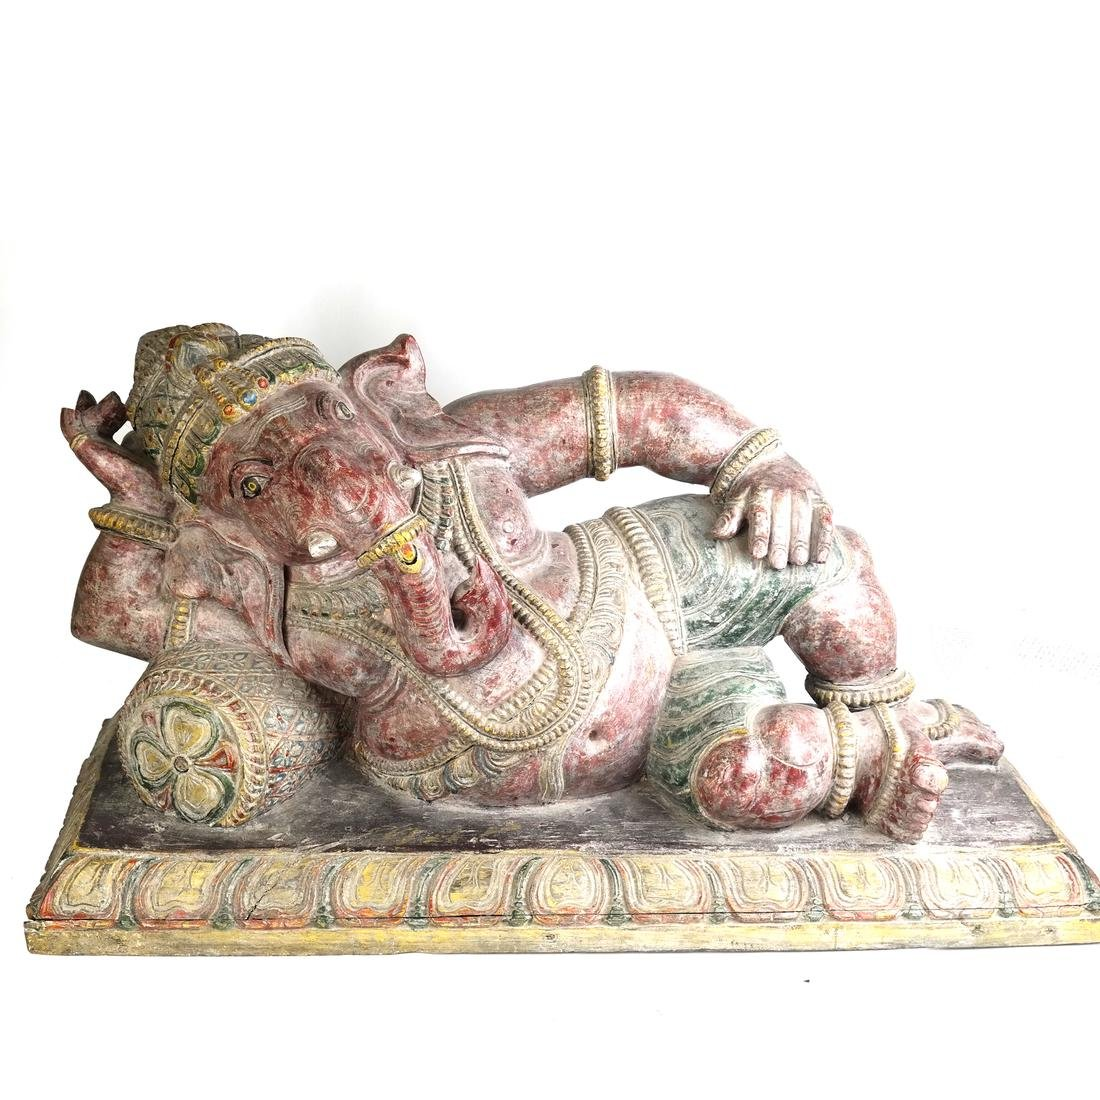 Asian Carved Wood Elephant Sculpture